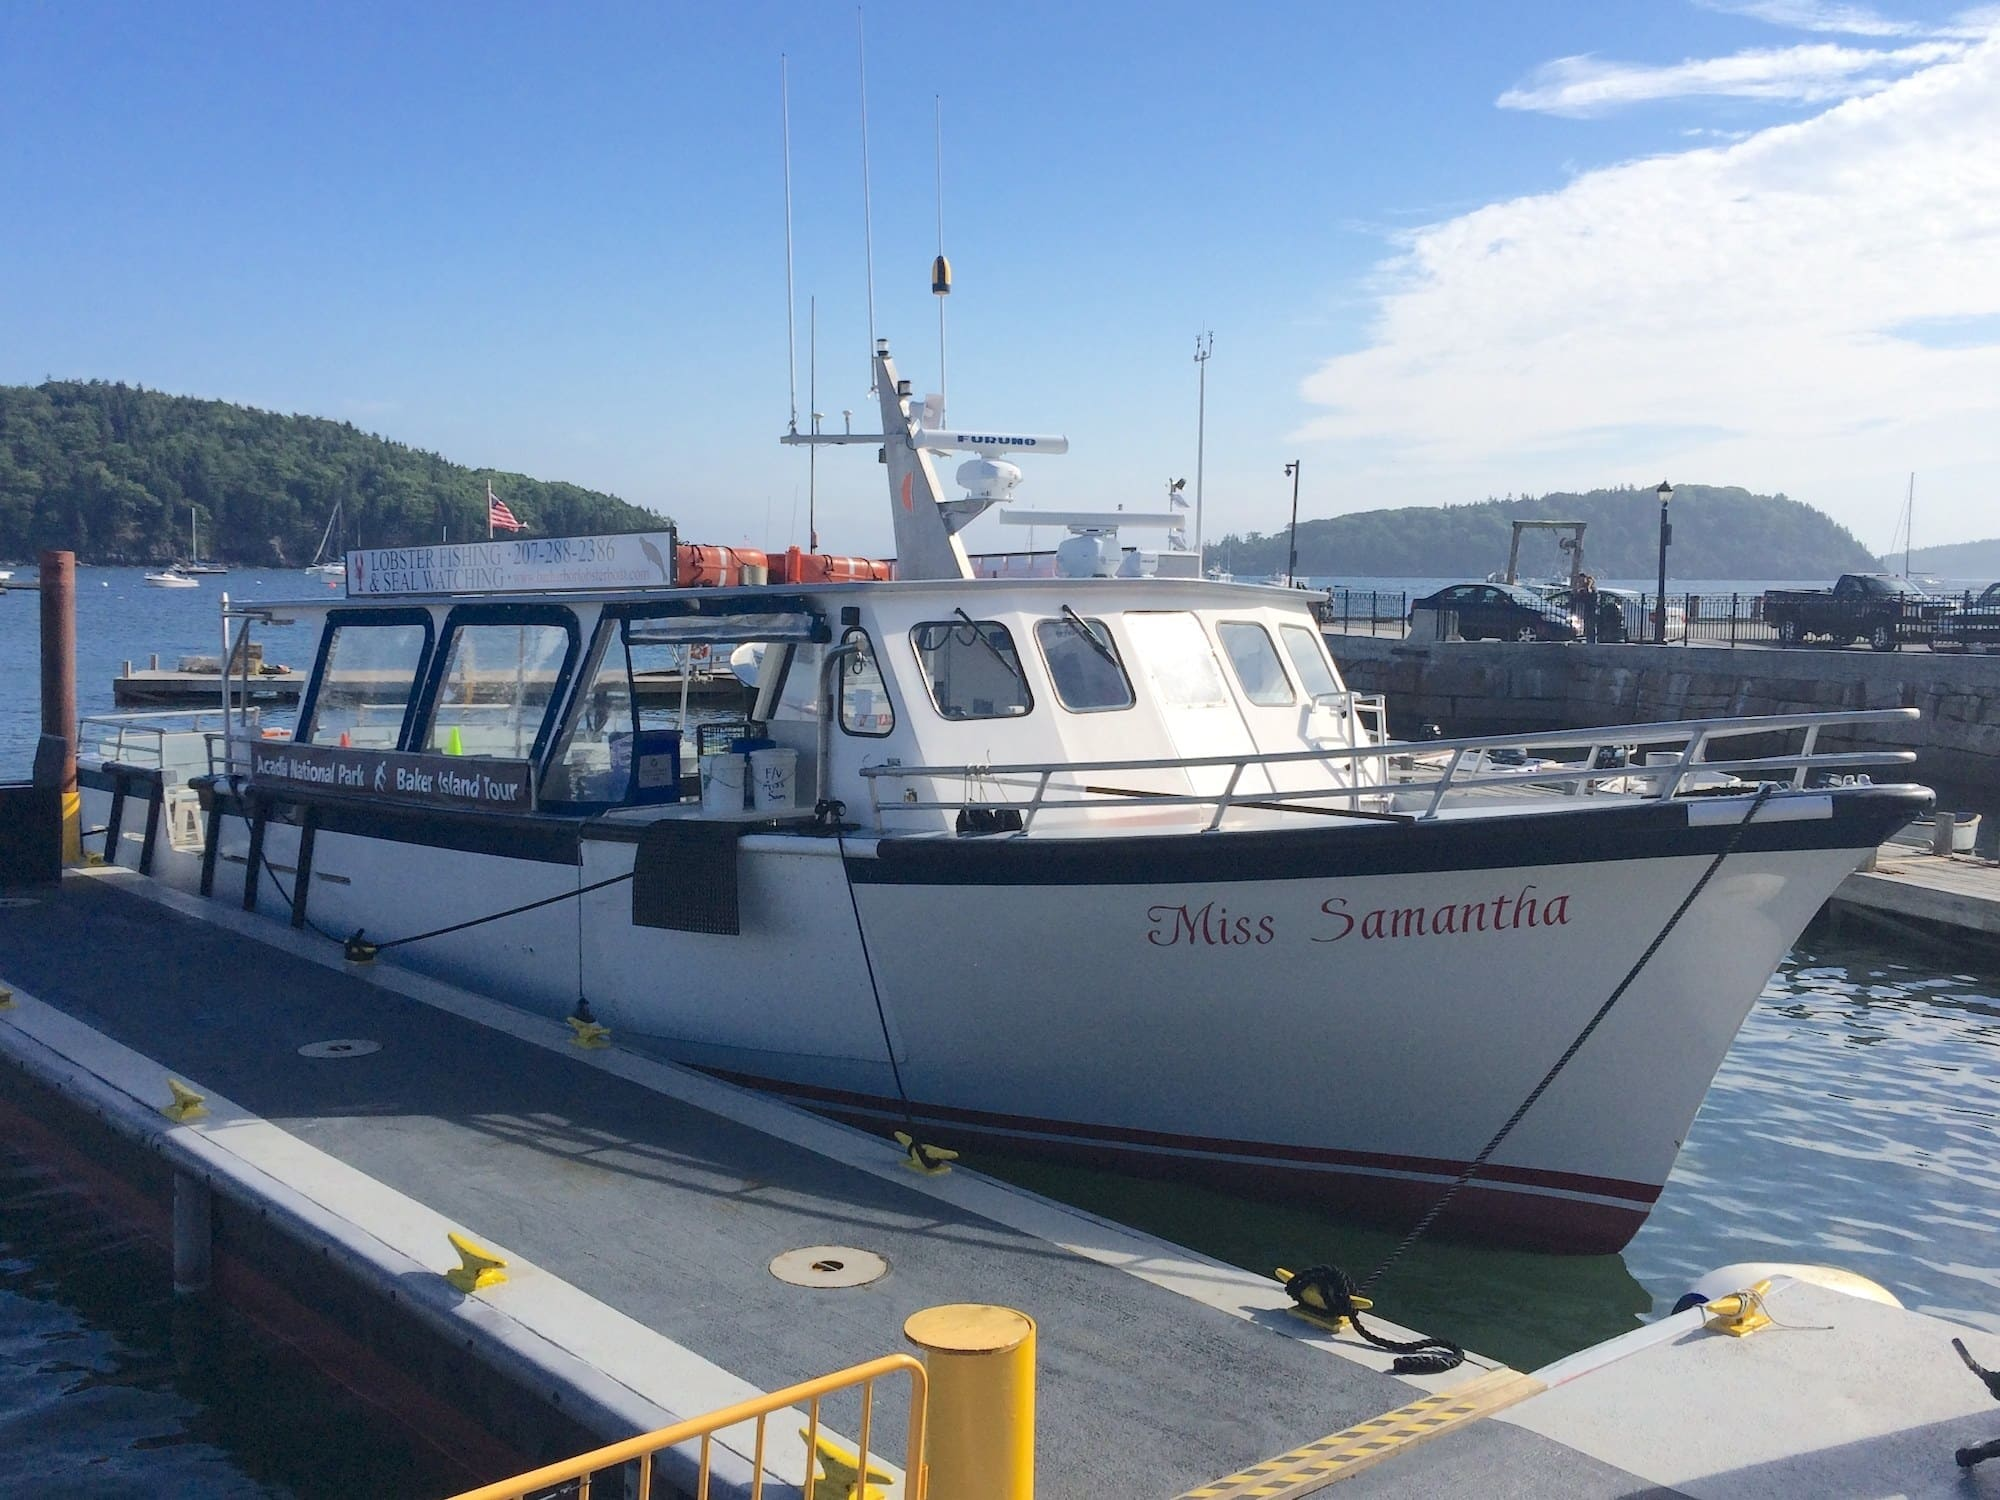 Baker Island Cruise / Here are the top things to do in Acadia National Park in Maine including the best hiking trails, scenic drives, eats, sights, and more.